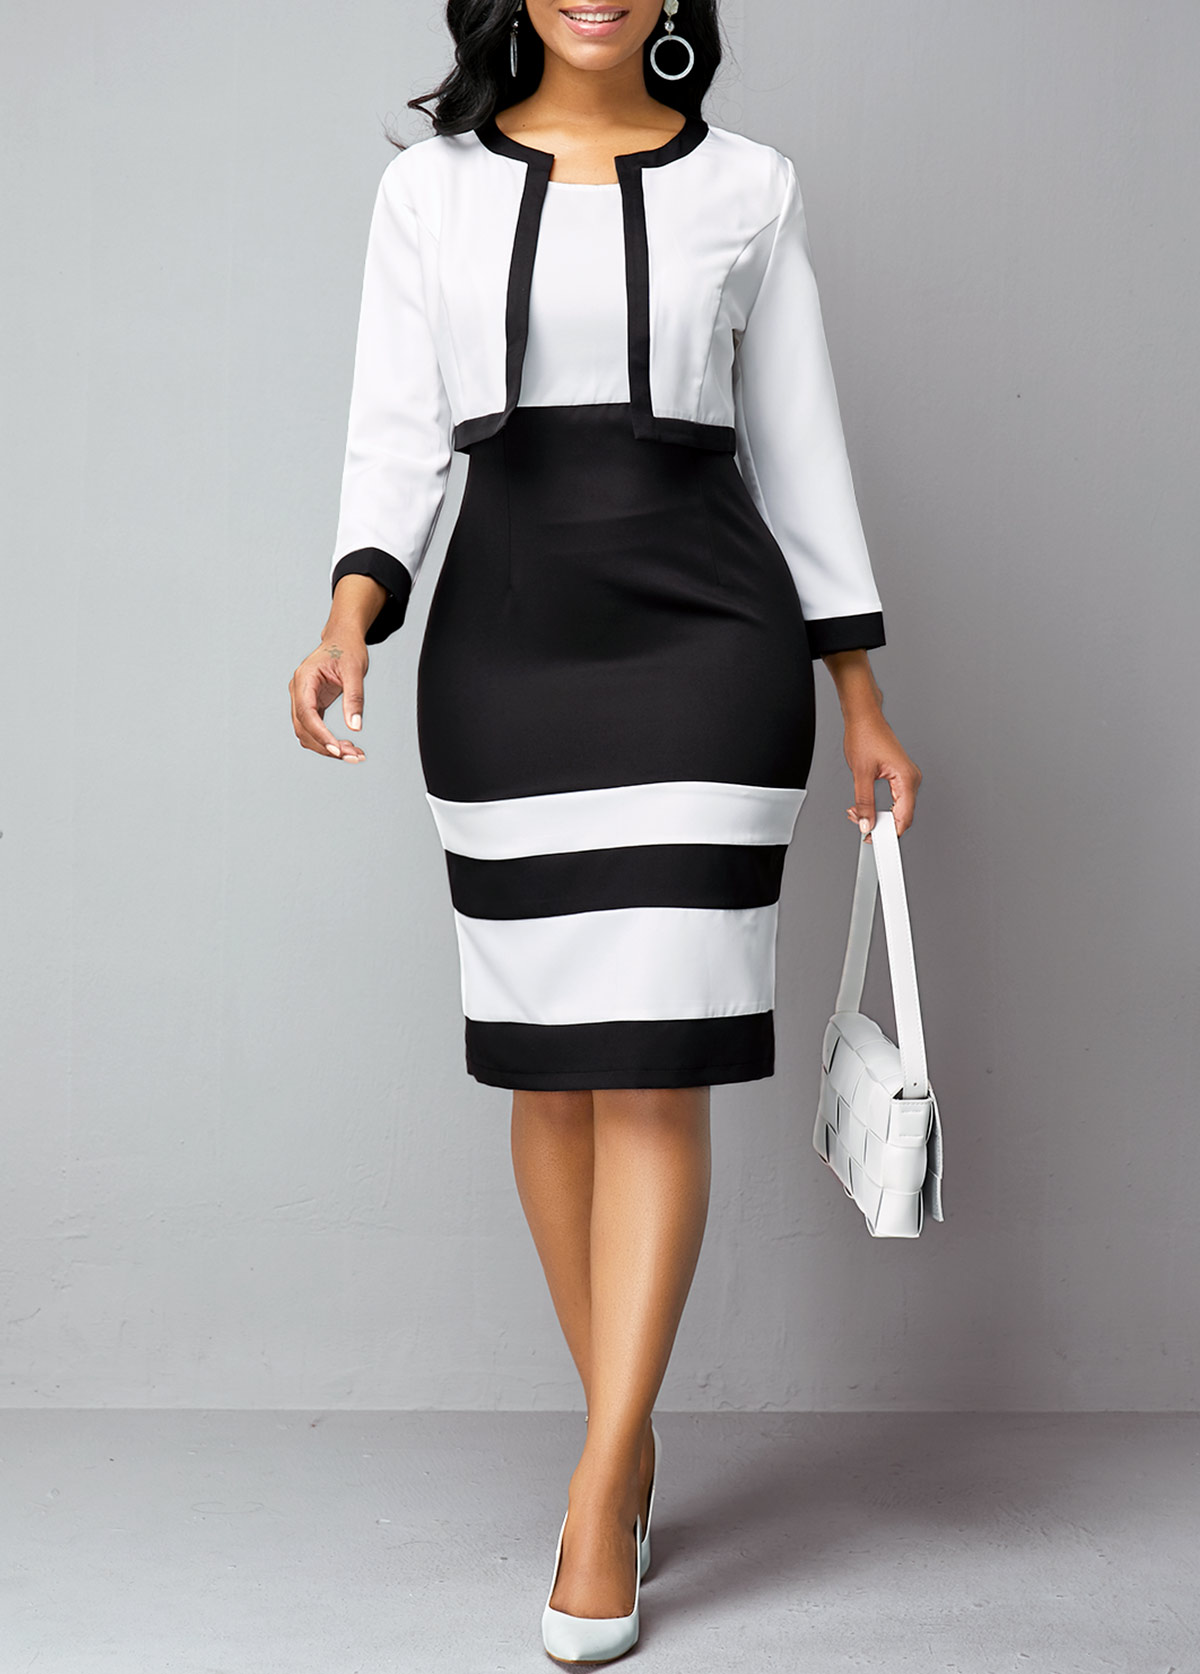 Contrast Piping Cardigan and Color Block Dress